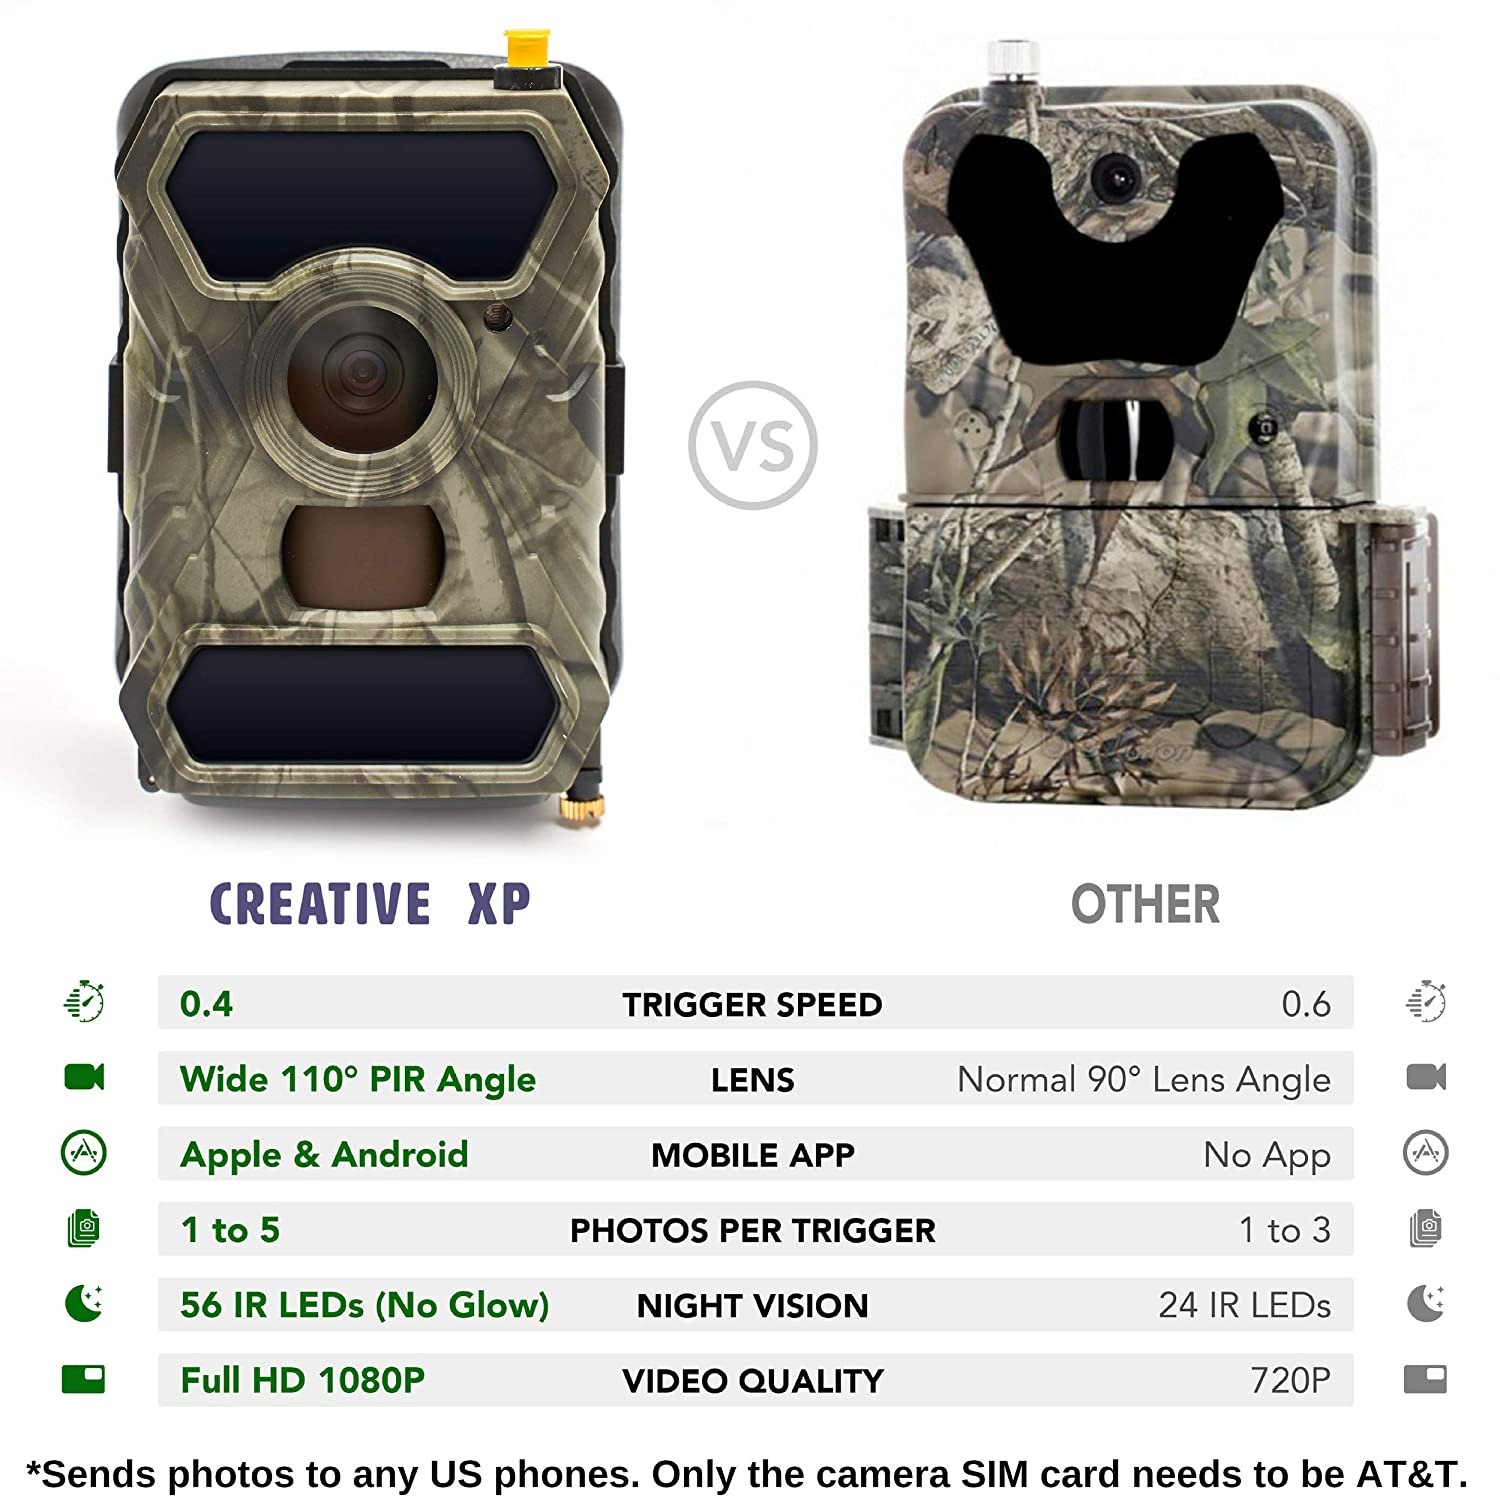 Amazon.com : CreativeXP 3G Cellular Trail Cameras | AT&T WiFi Full HD Wild Game Camera with Night Vision for Deer Hunting, Security | Wireless Waterproof ...